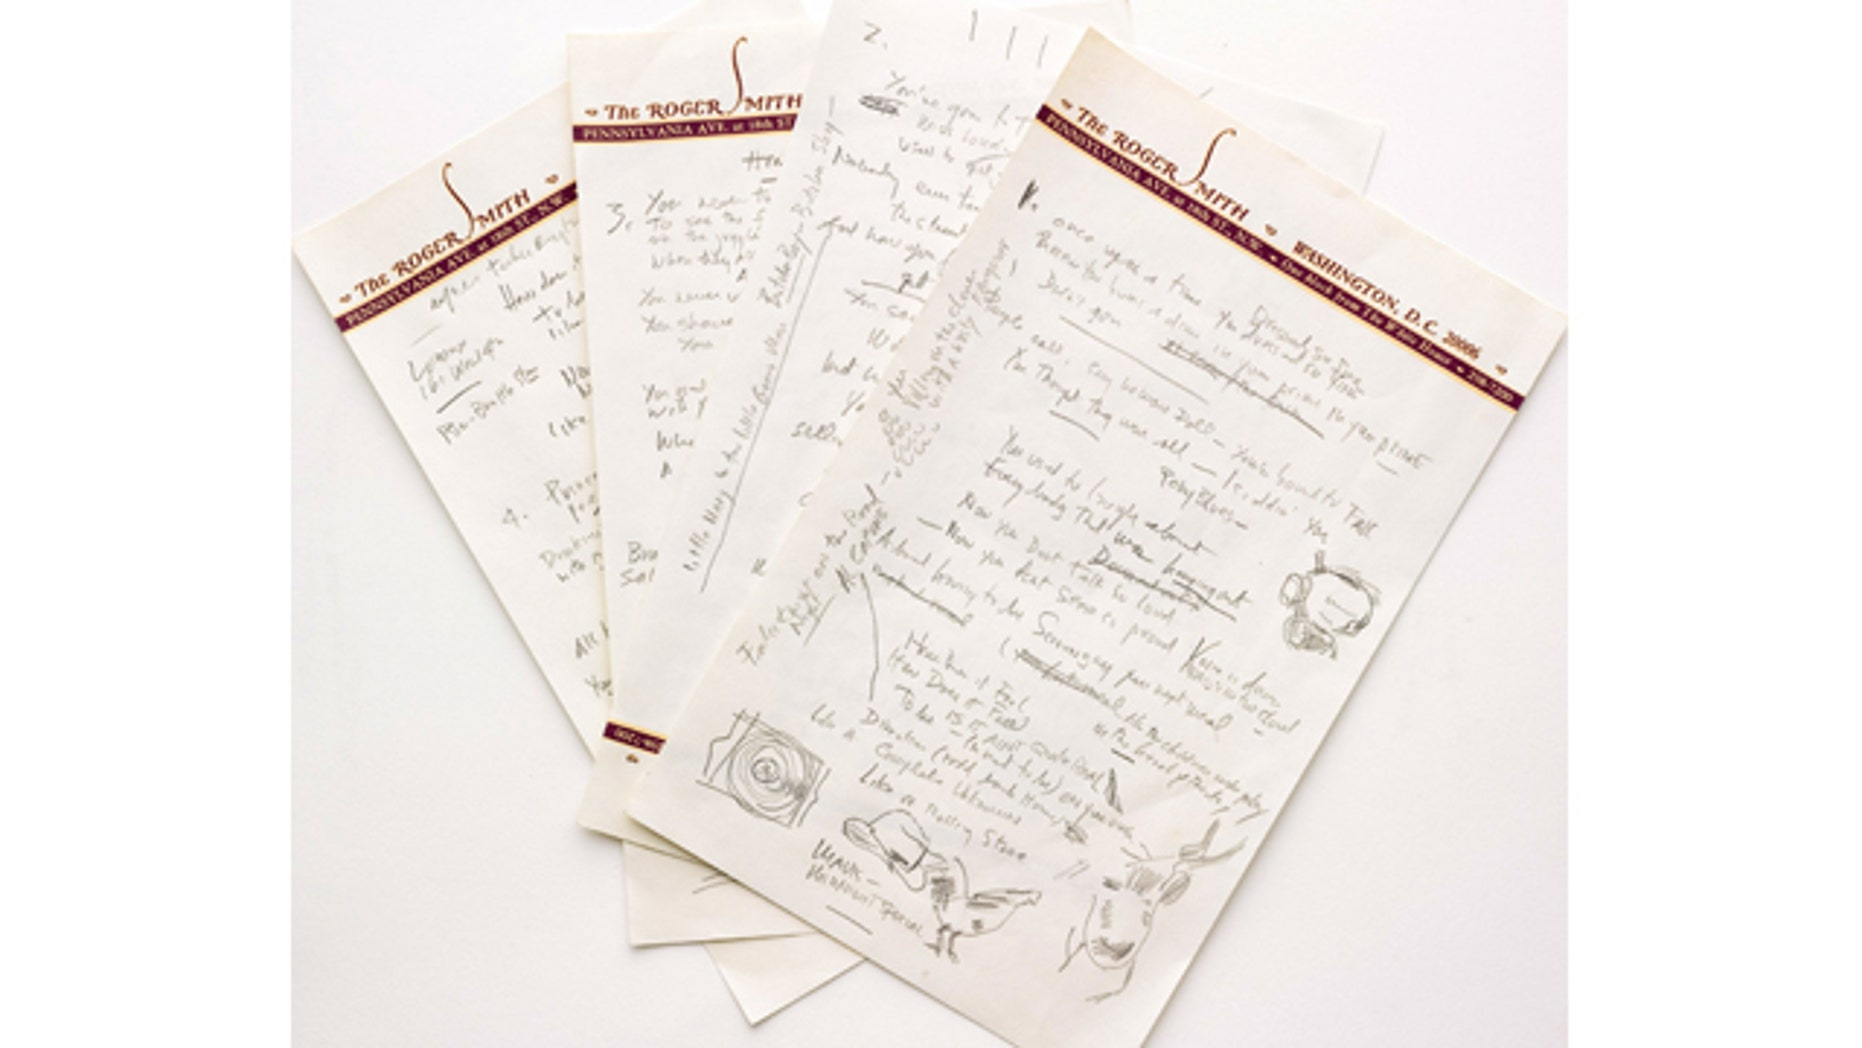 This undated photo provided by Sothebys shows a working draft  of Bob Dylans Like a Rolling Stone, one of the most popular songs of all time.  The draft, in Dylans own hand, is coming to auction in New York on June 24, 2014 where it could fetch an estimated $1 million to $2 million.  Sothebys says it is the only known surviving draft of the final lyrics for this transformative rock anthem. (AP Photo/Sothebys)